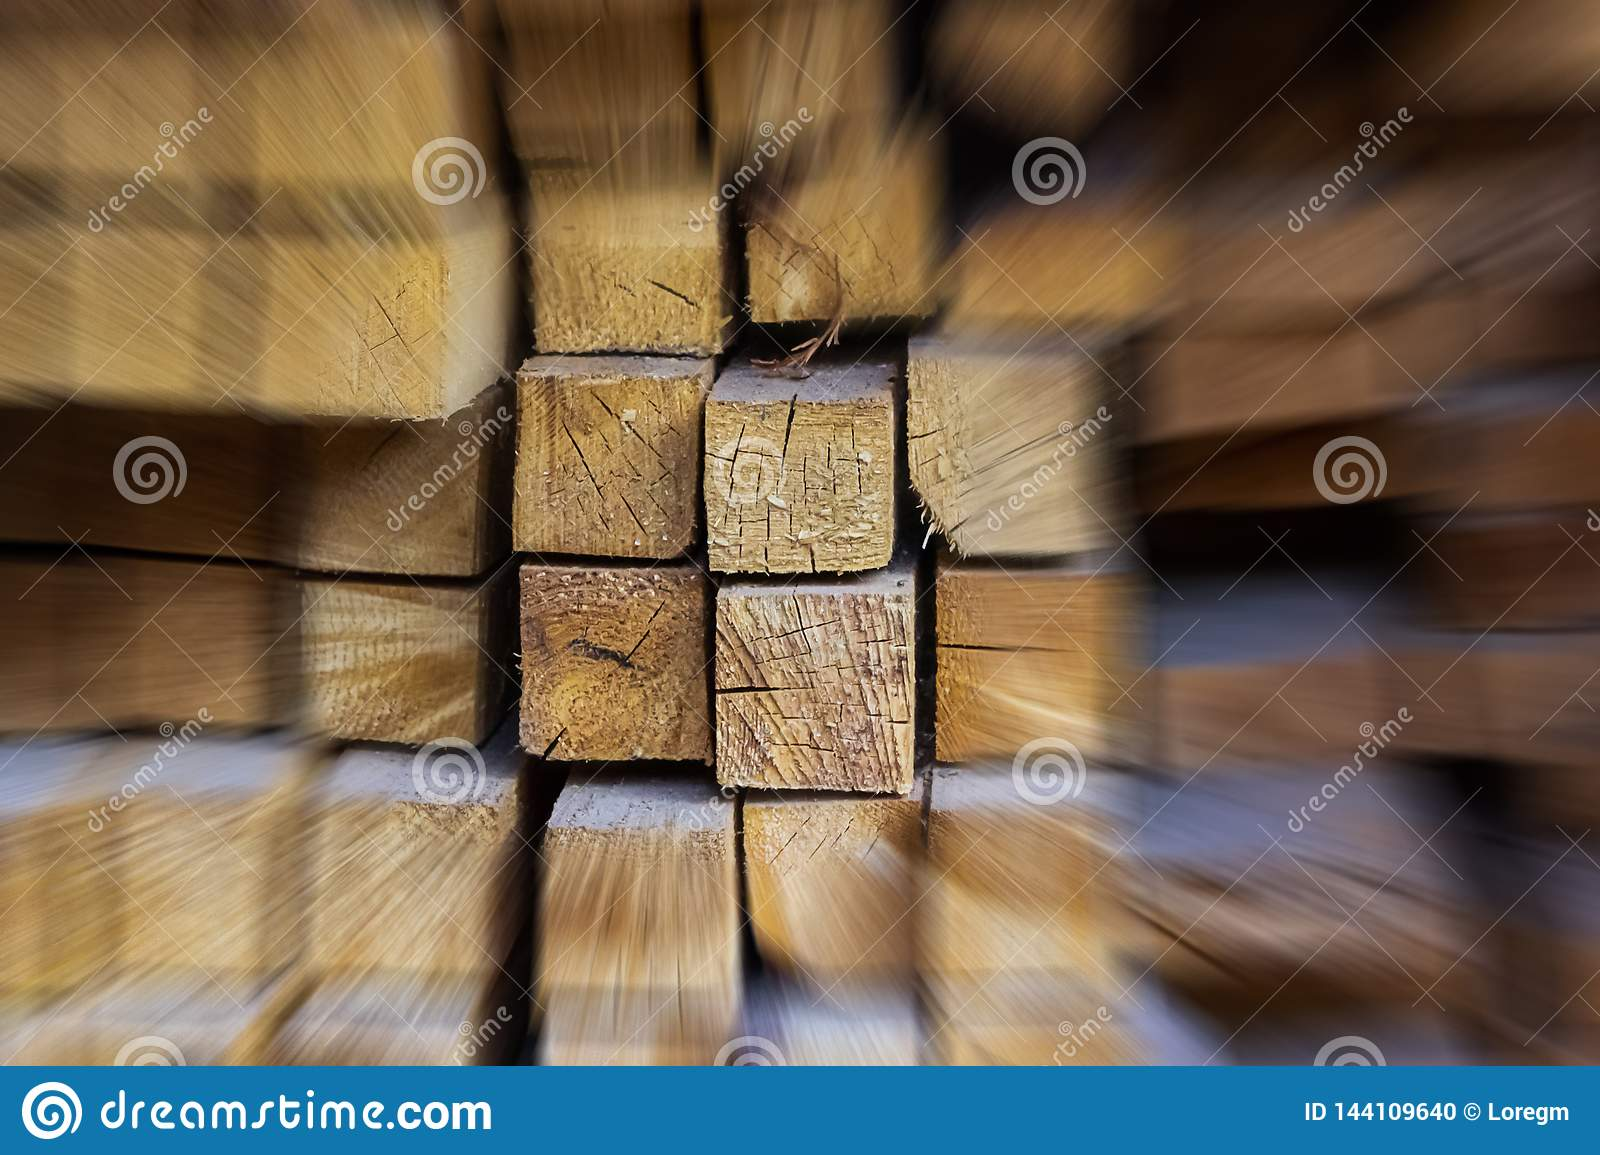 Acceleration abstract wooden background group of beams among blurry building materials highlighted set close-up base